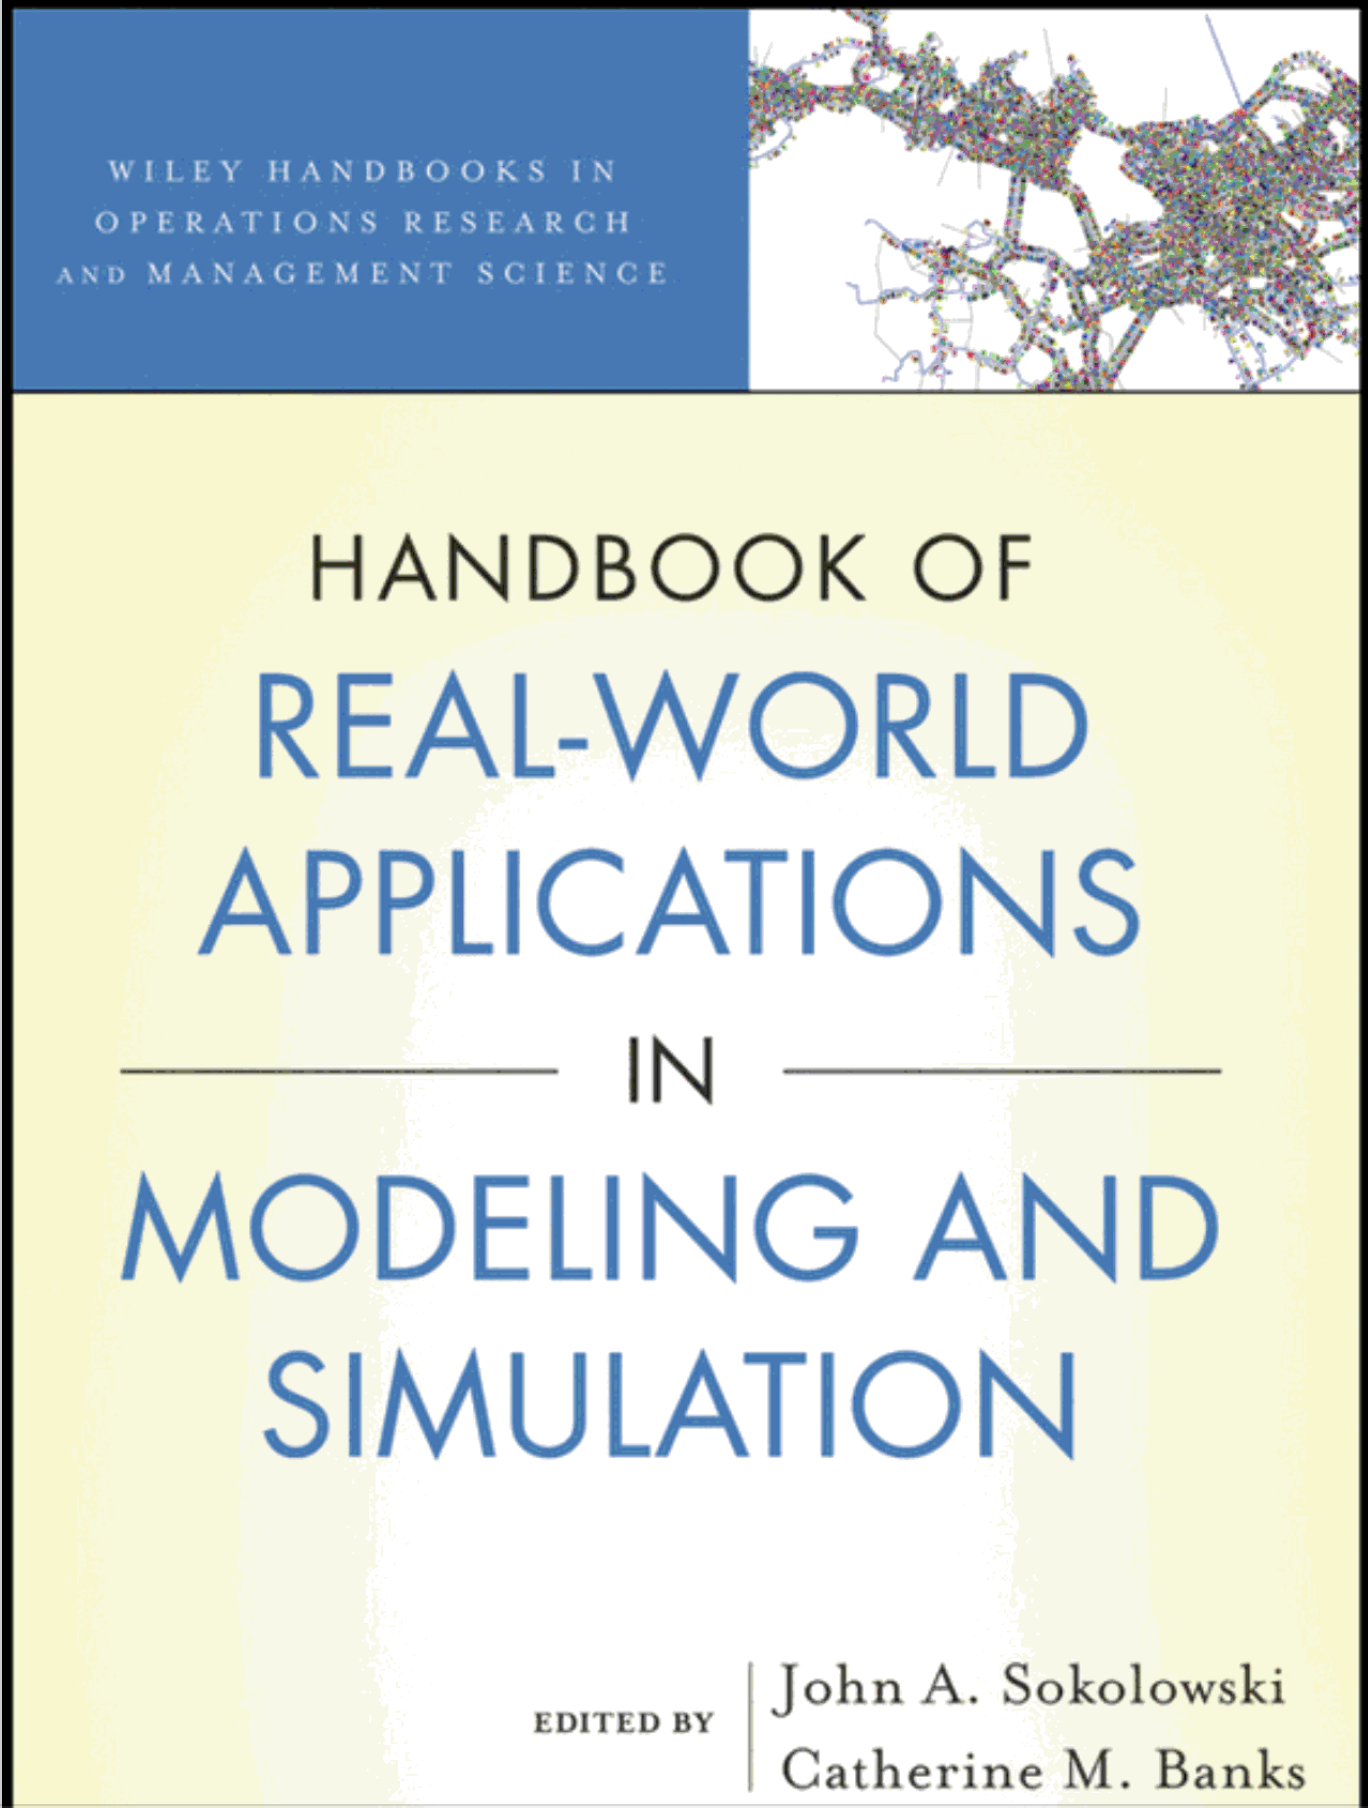 Source: Banks & Sokolowski (2014) | Image: Handbook of Real-World Applications in Modeling and Simulation